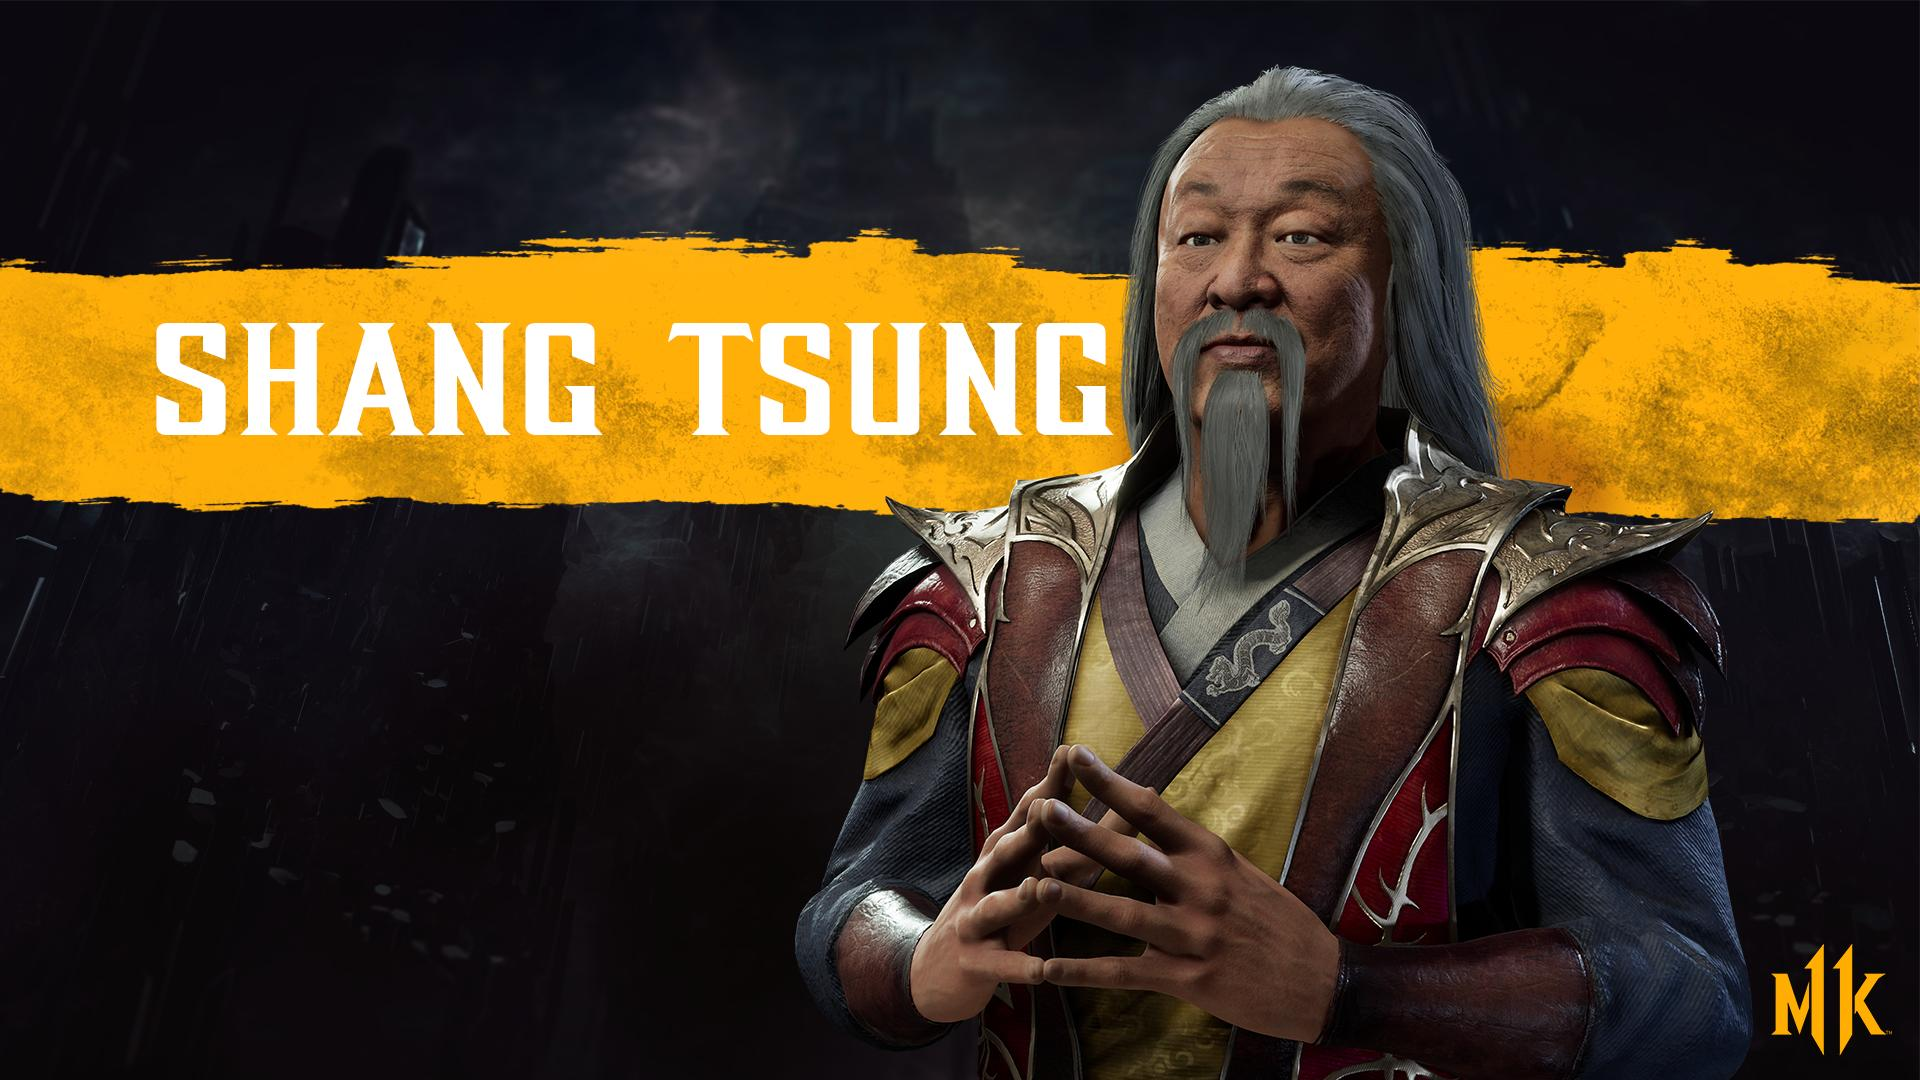 Mortal Kombat 11 background - Shang Tsung